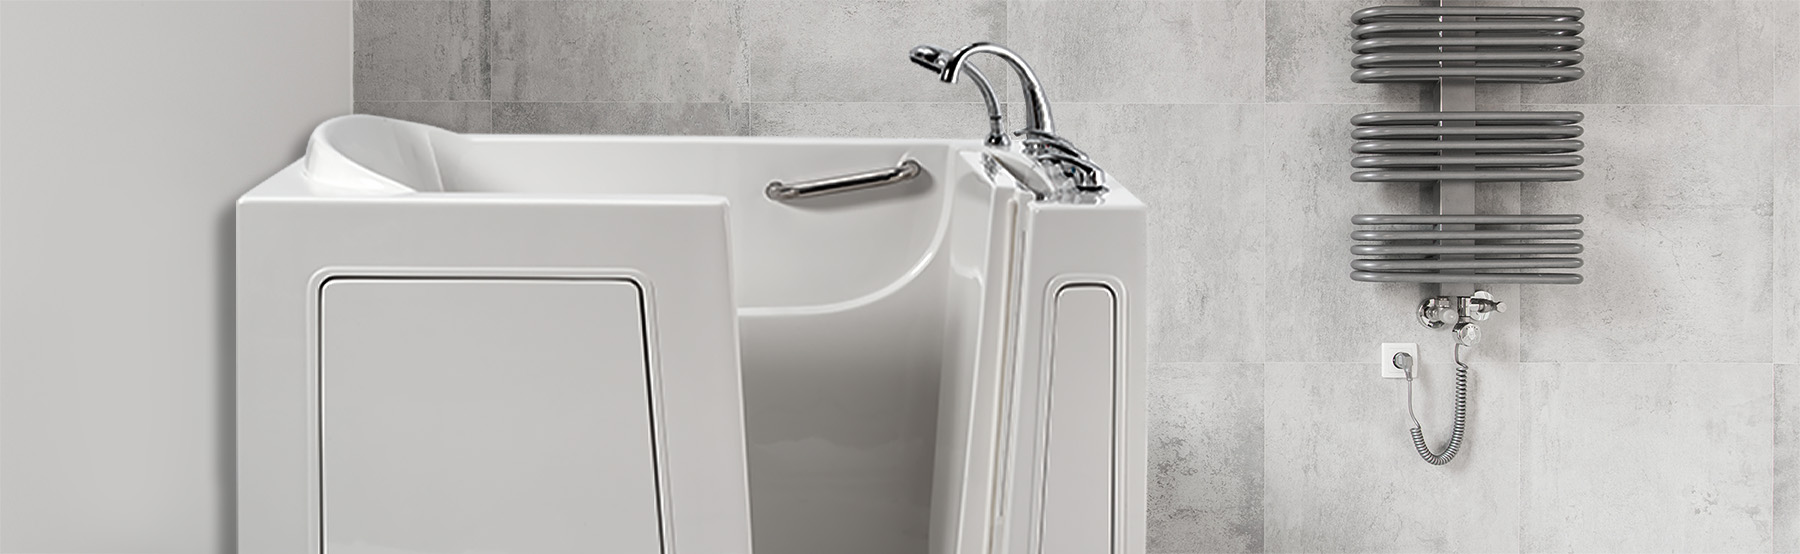 accessories for walk in tub walk in tub options bliss tubs